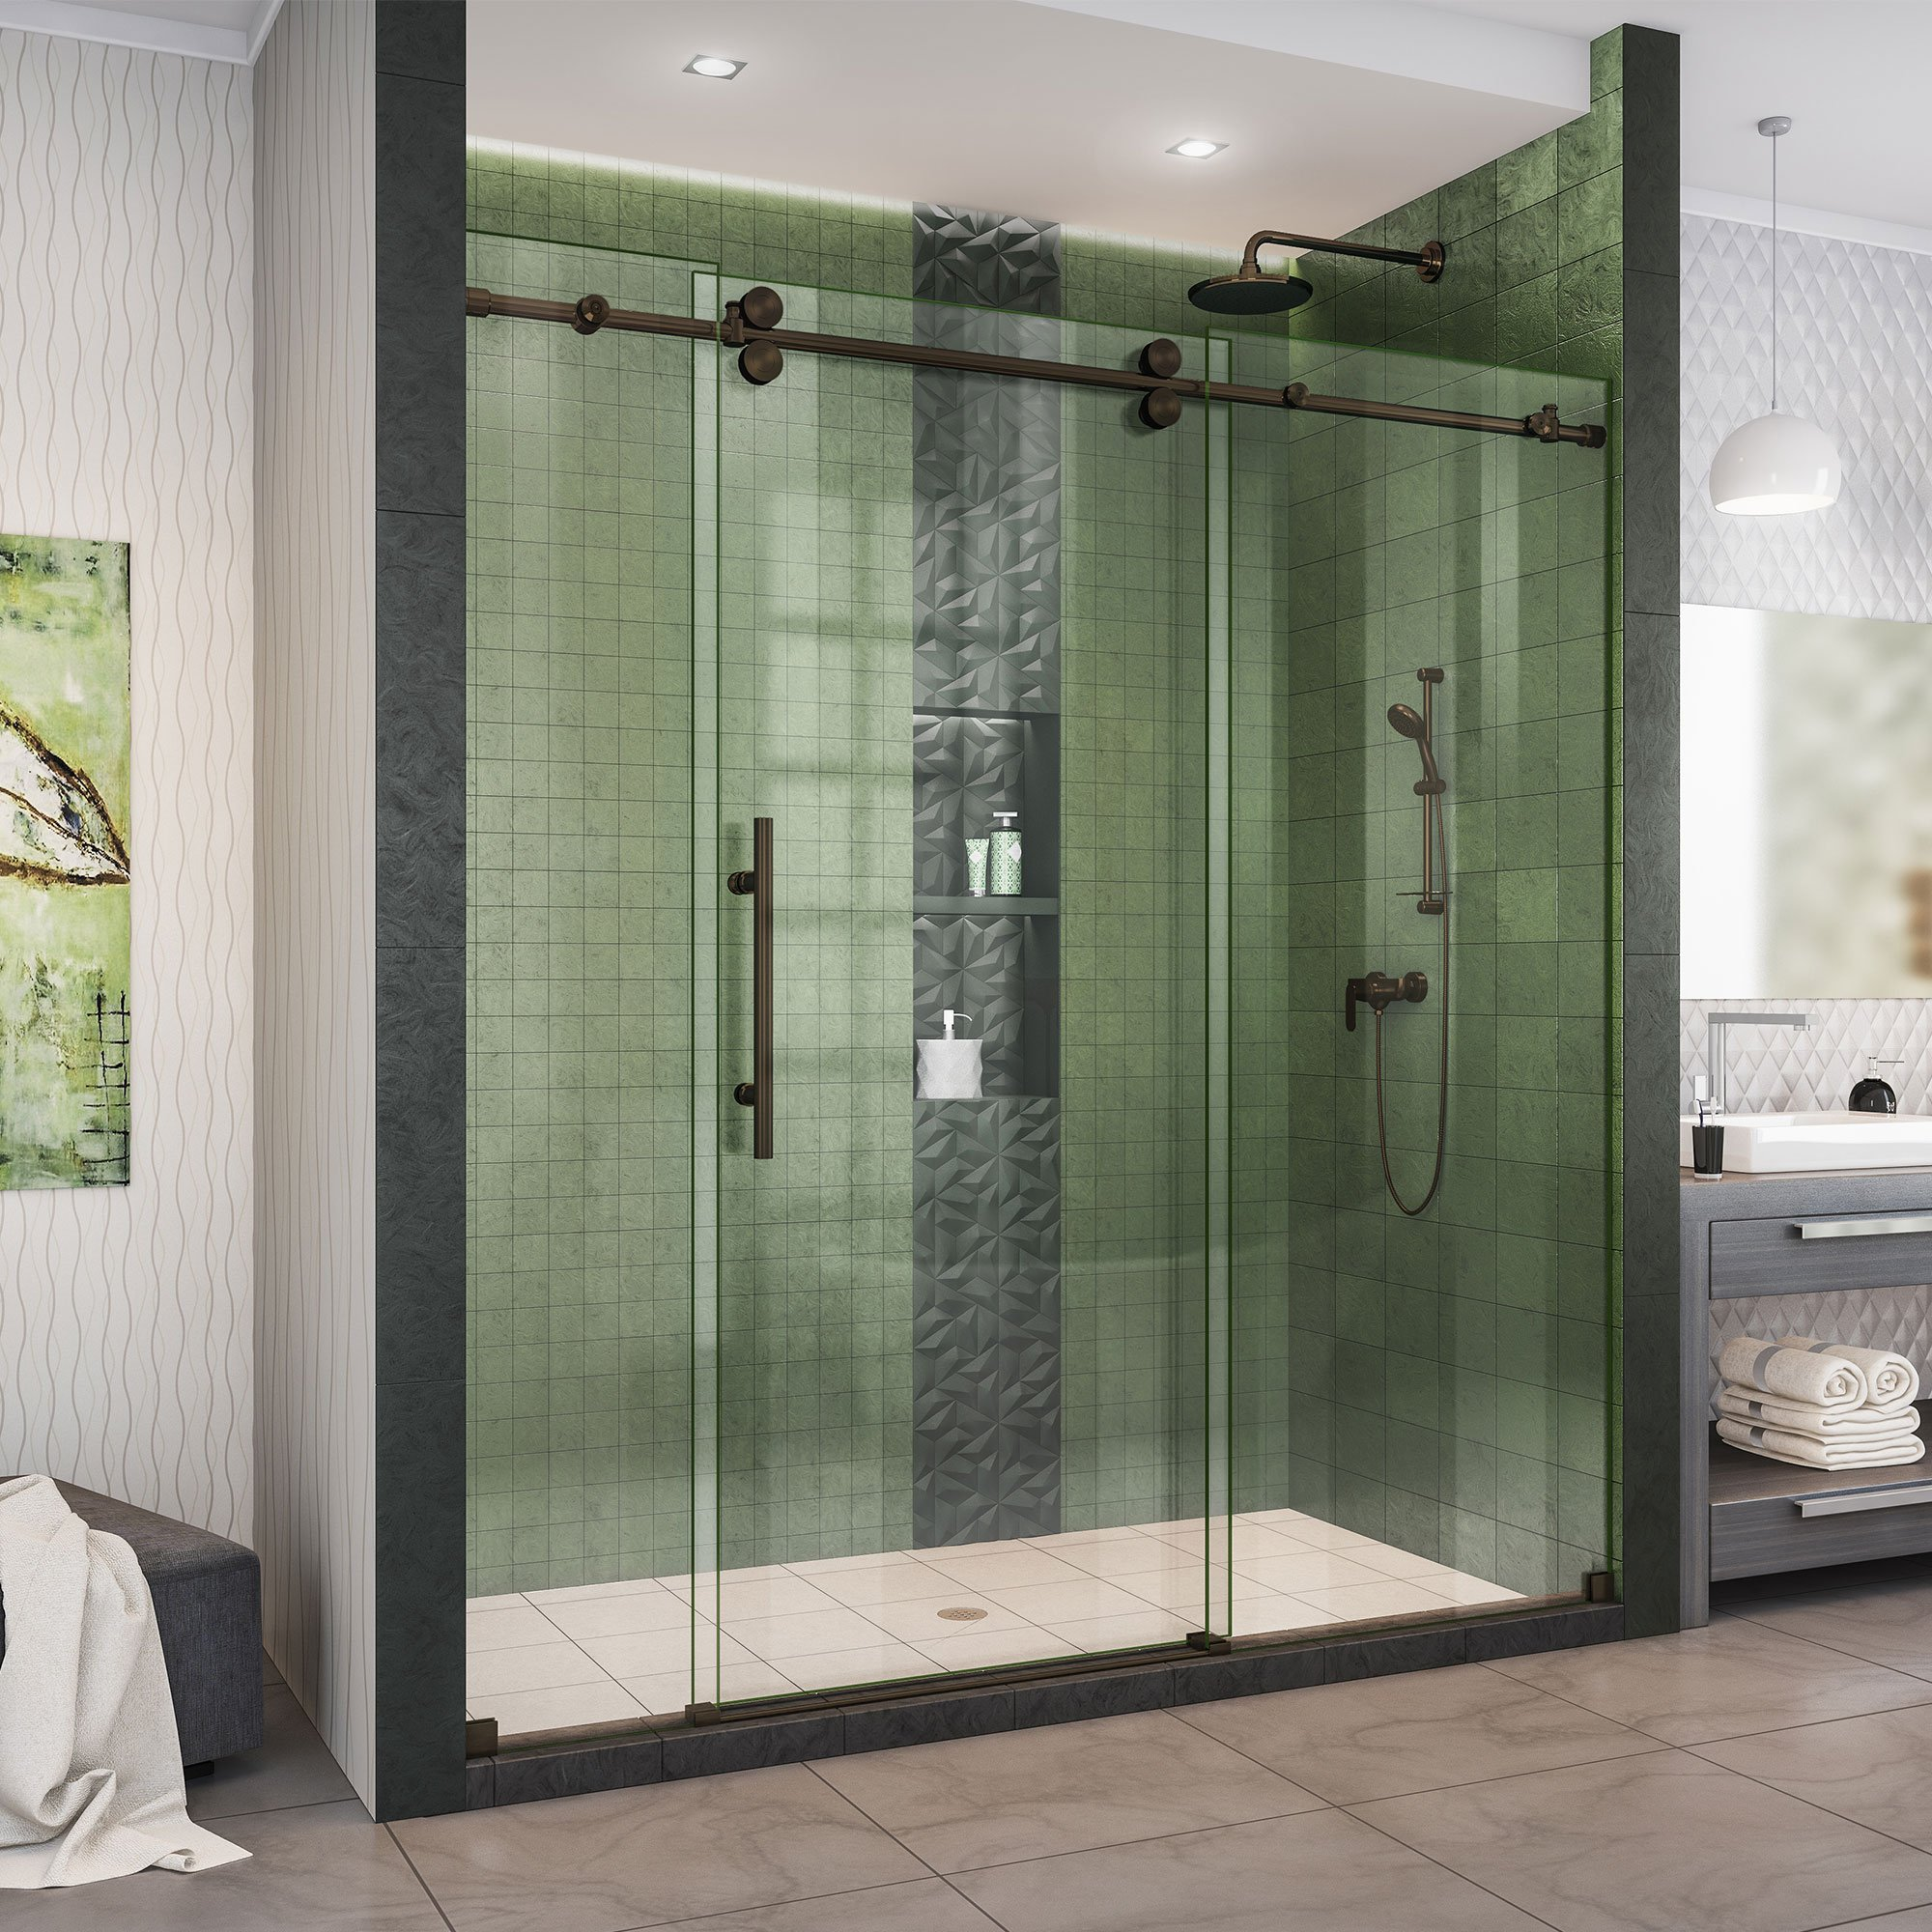 DreamLine Enigma-XO 68-72 in. W x 76 in. H Fully Frameless Sliding Shower Door in Oil Rubbed Bronze, SHDR-61727620-06